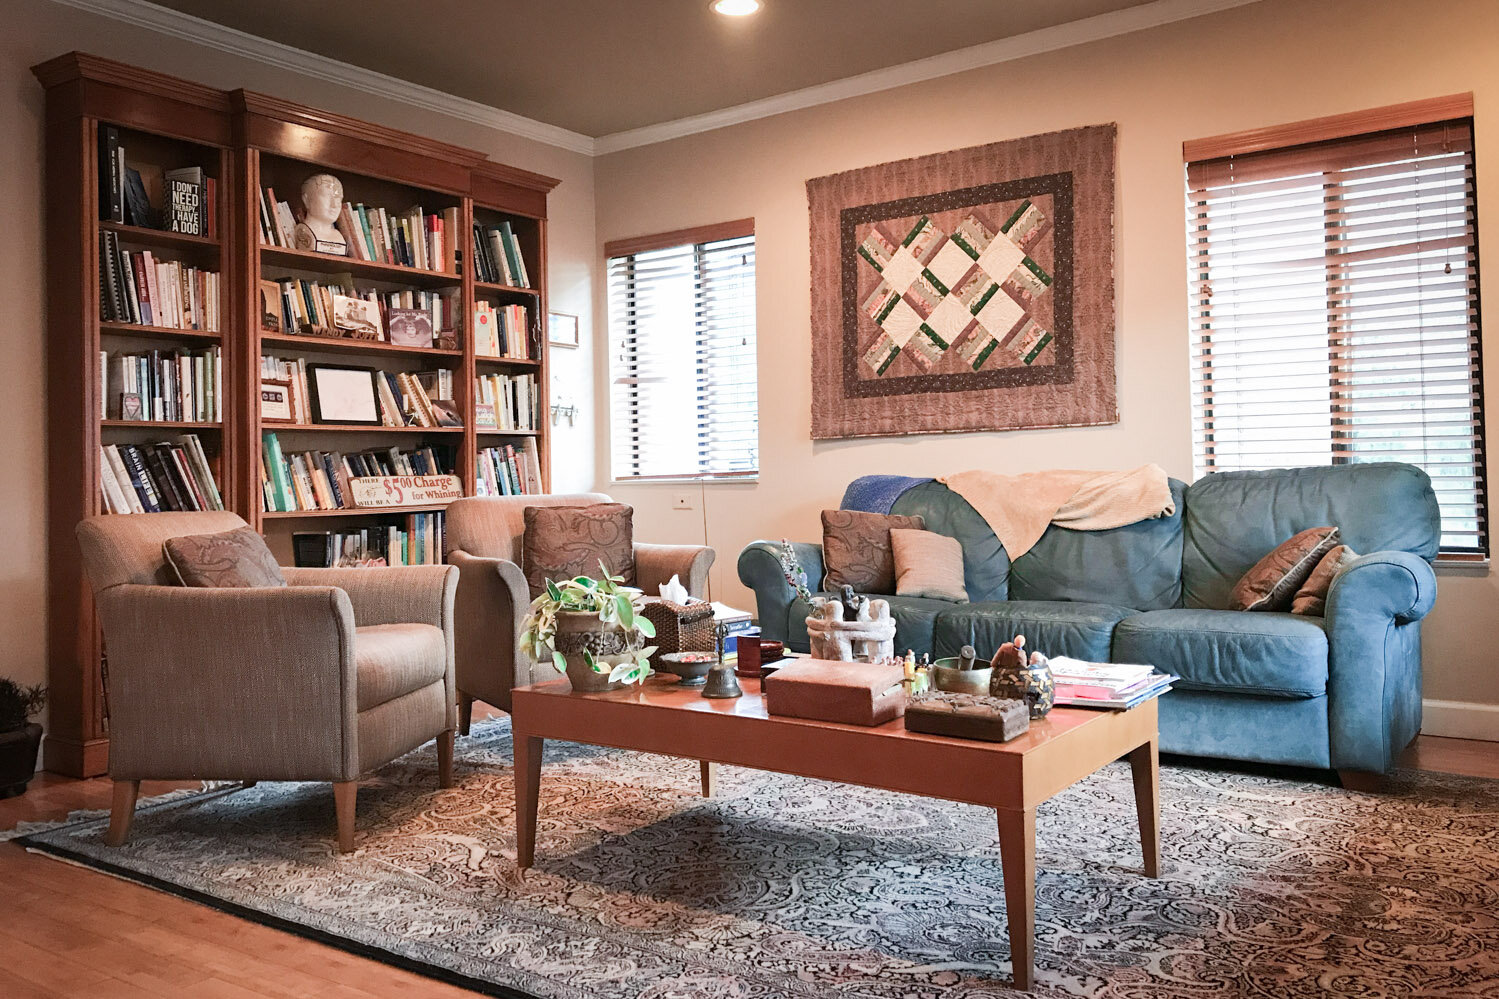 My Practice - Set in heart of Miami, my office welcomes you like your own living room. The space promotes a calm atmosphere and a safe environment for personal conversation.